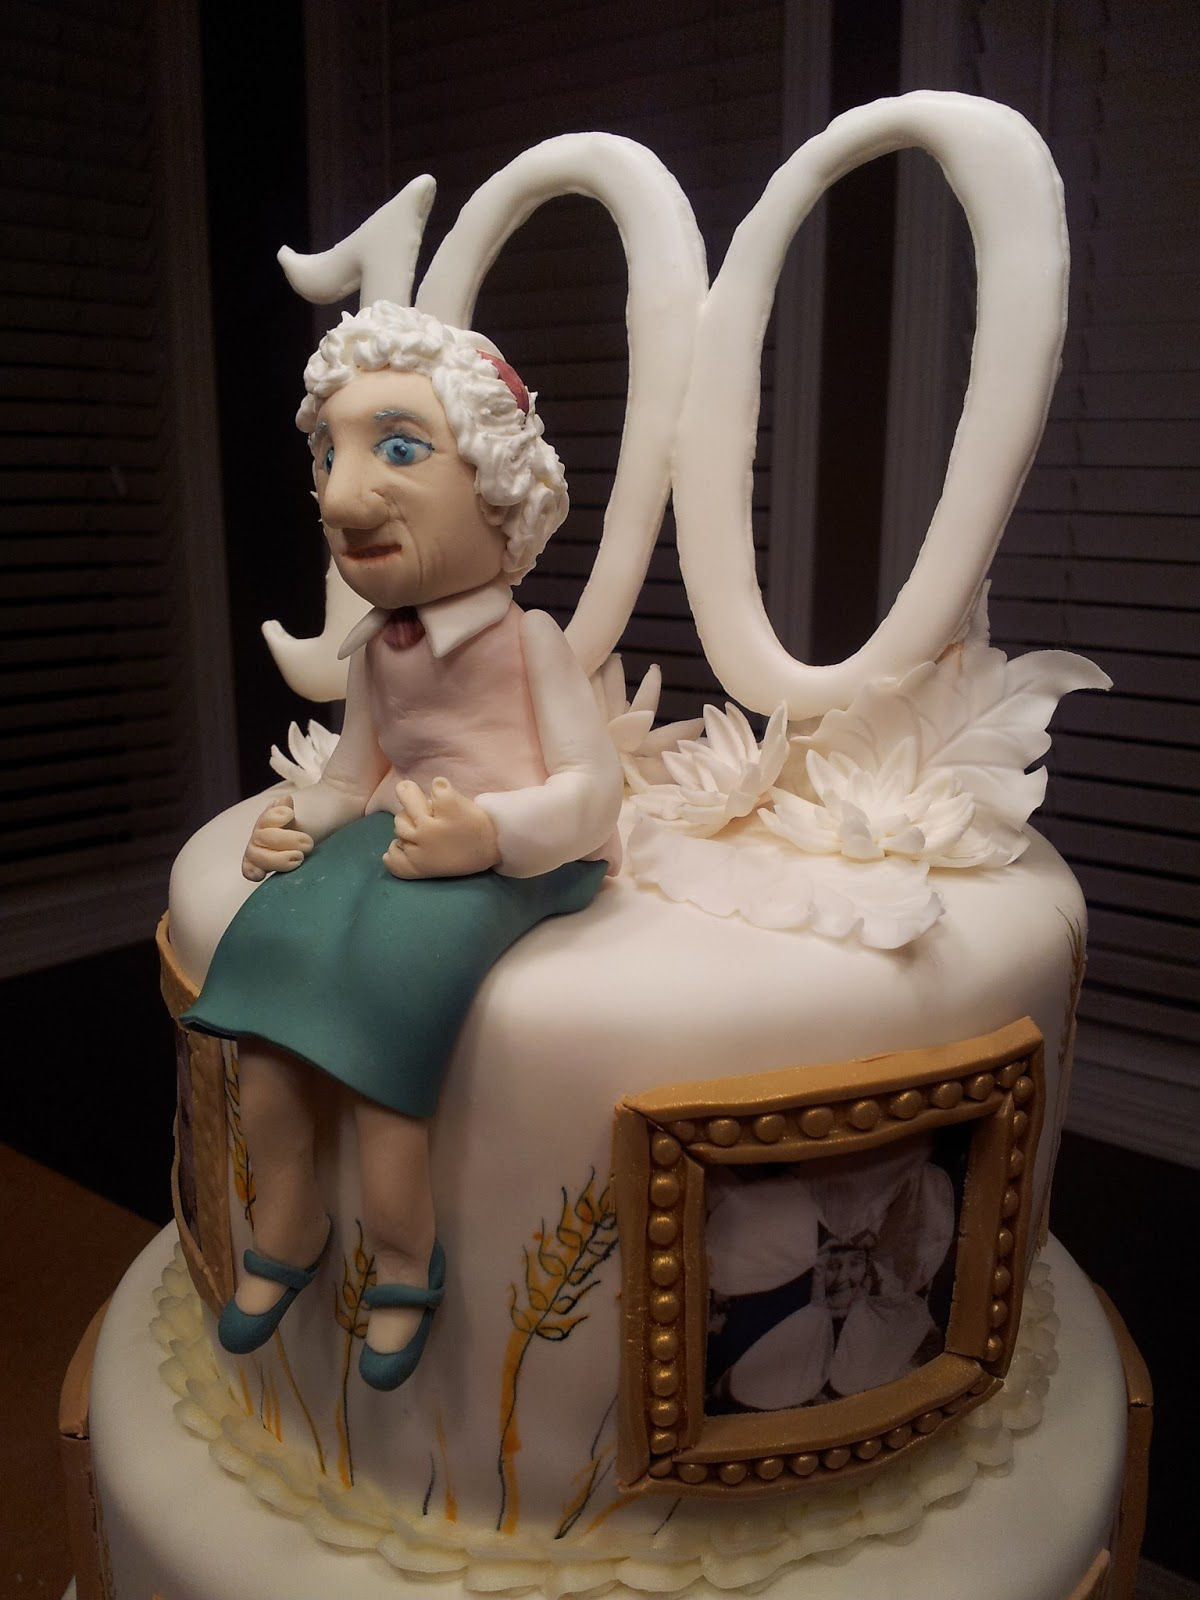 Cake Decorating Ideas For A 90 Year Old : Kiddles  N Bits: 100th Birthday Cake